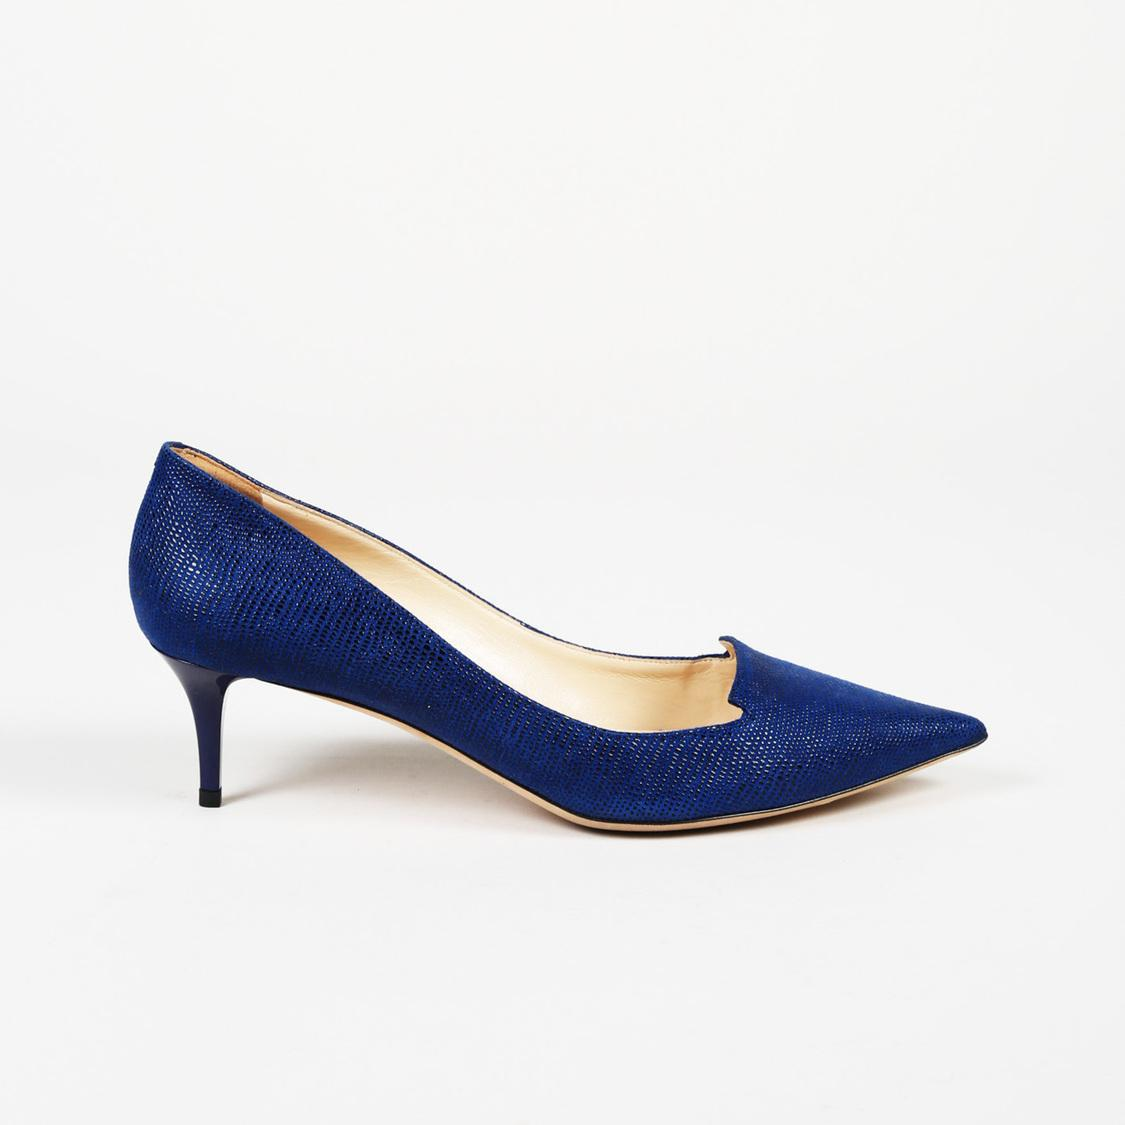 57437af4c00 Lyst - Jimmy Choo Allure Speckled Leather Pumps in Blue